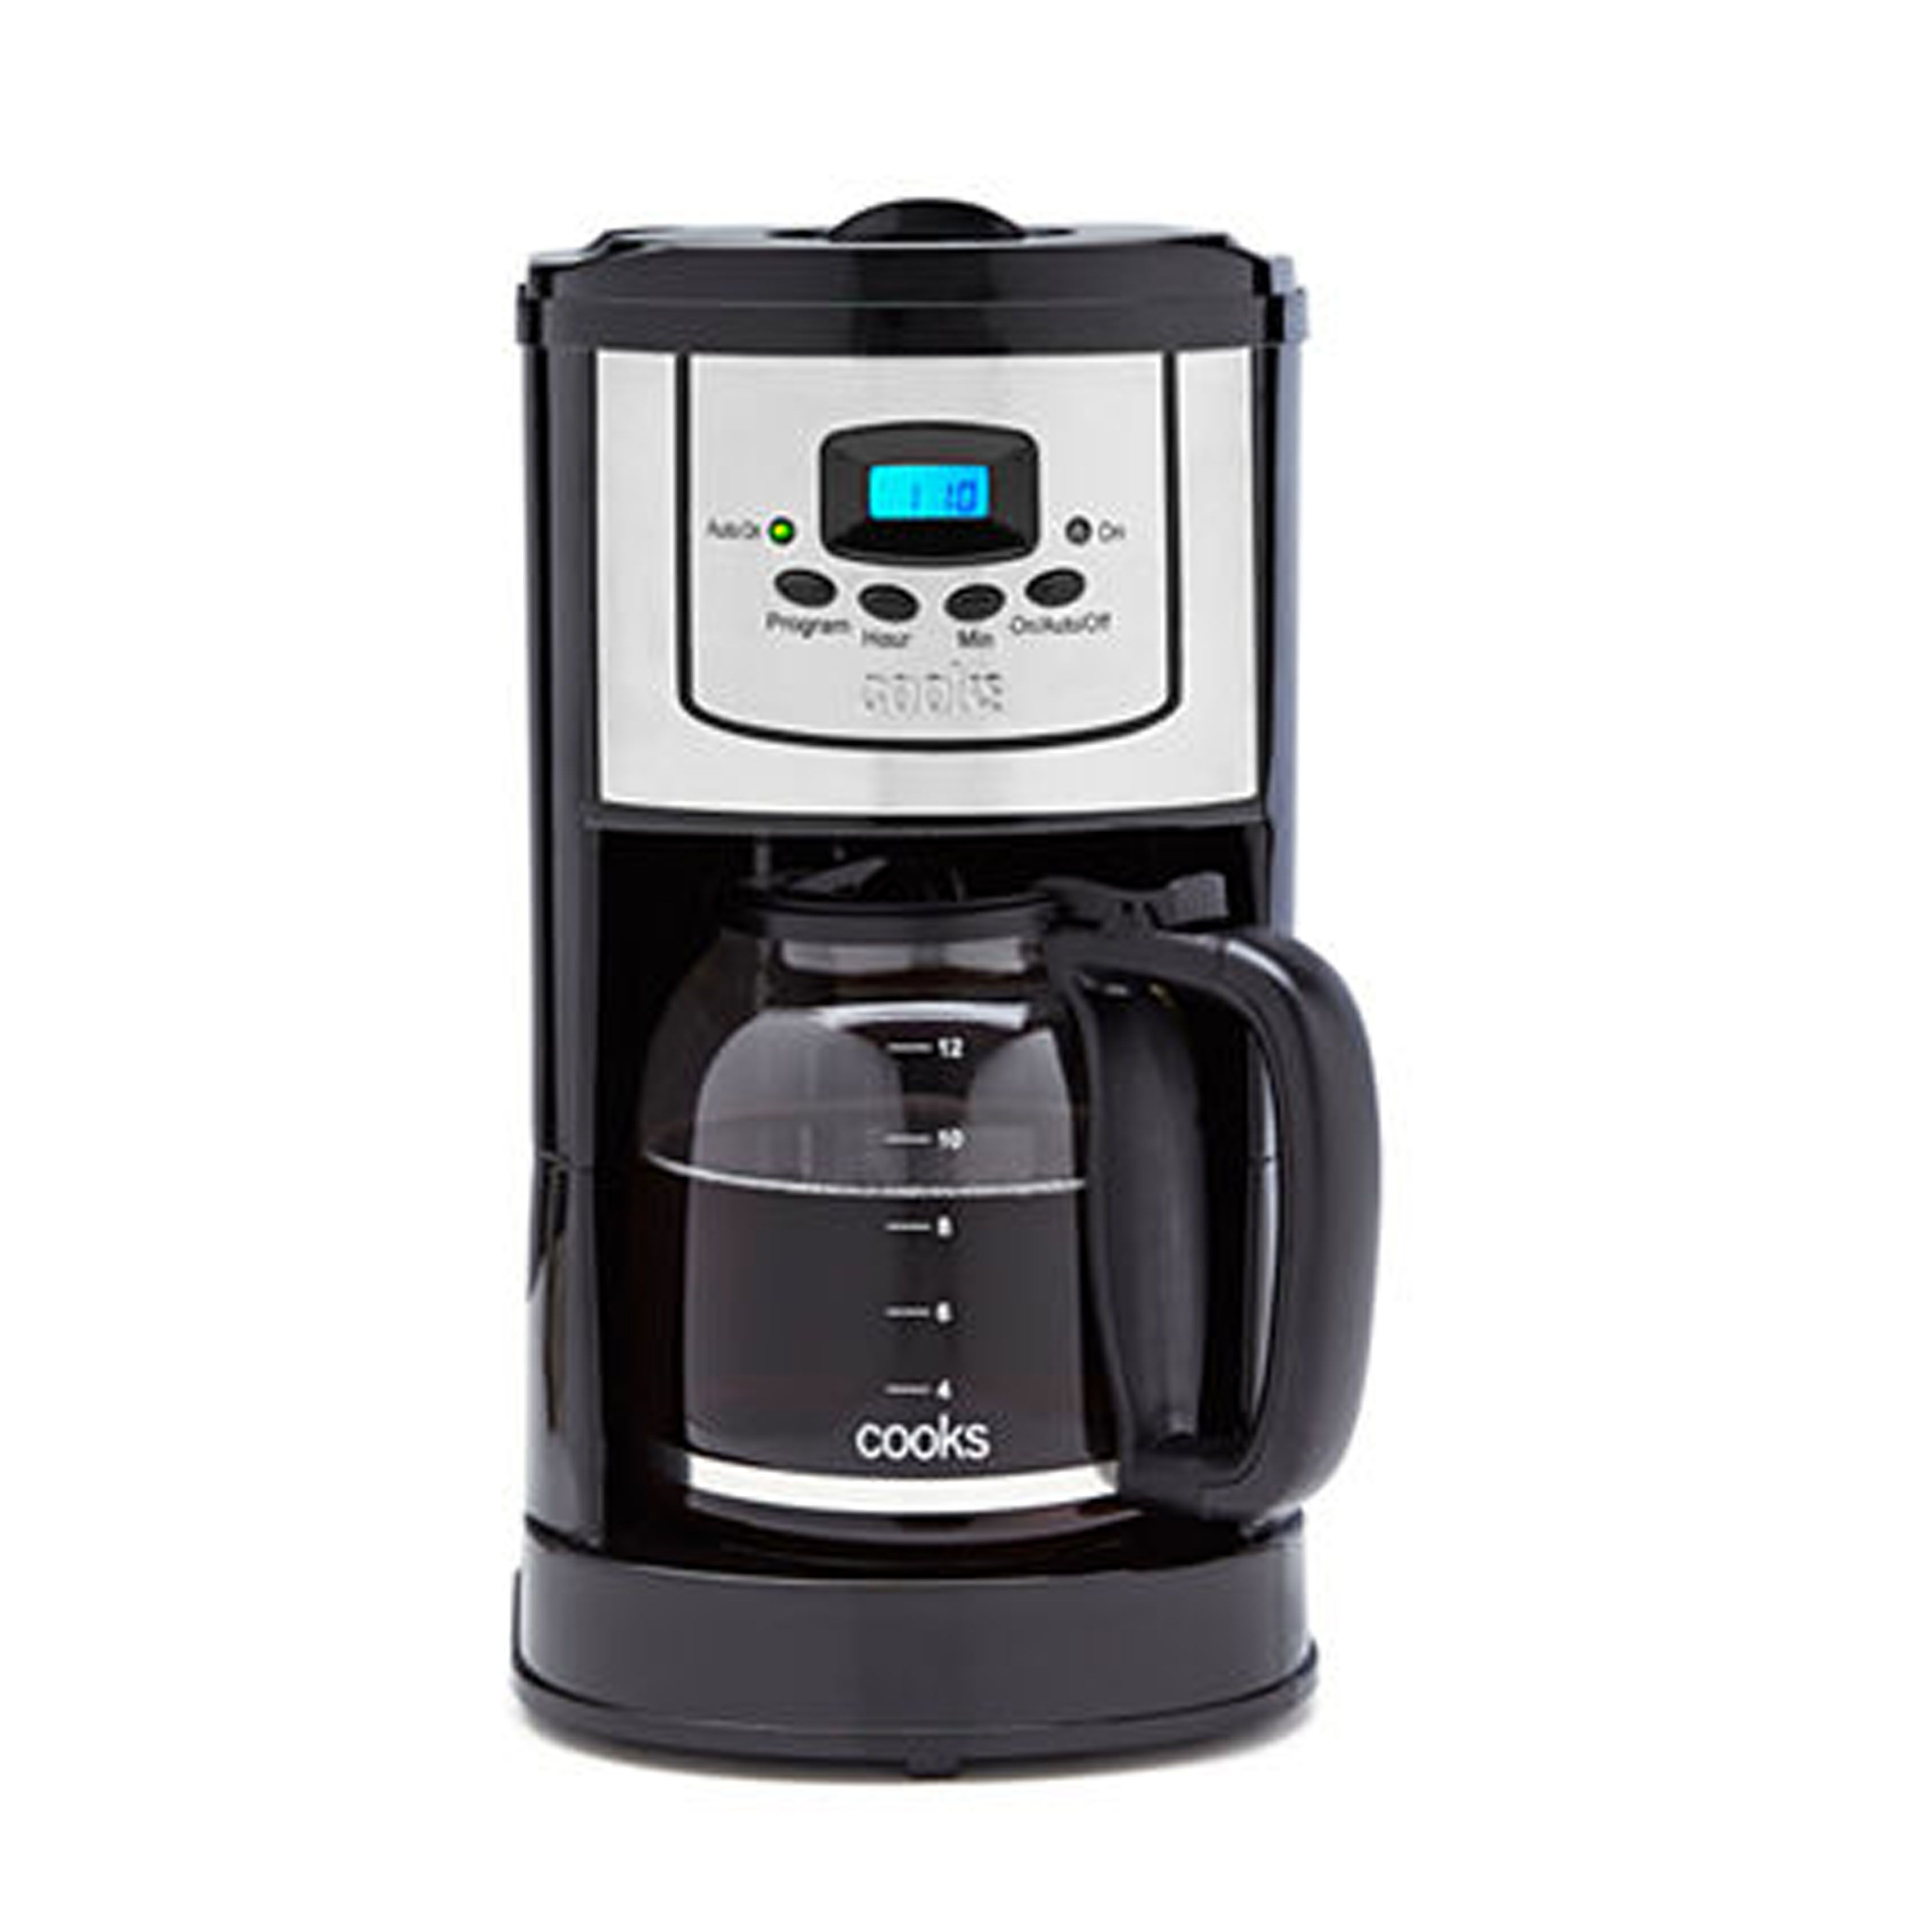 cooks 12 cup coffeemaker review price and features rh goodhousekeeping com Cooks Blender Toaster Cooks